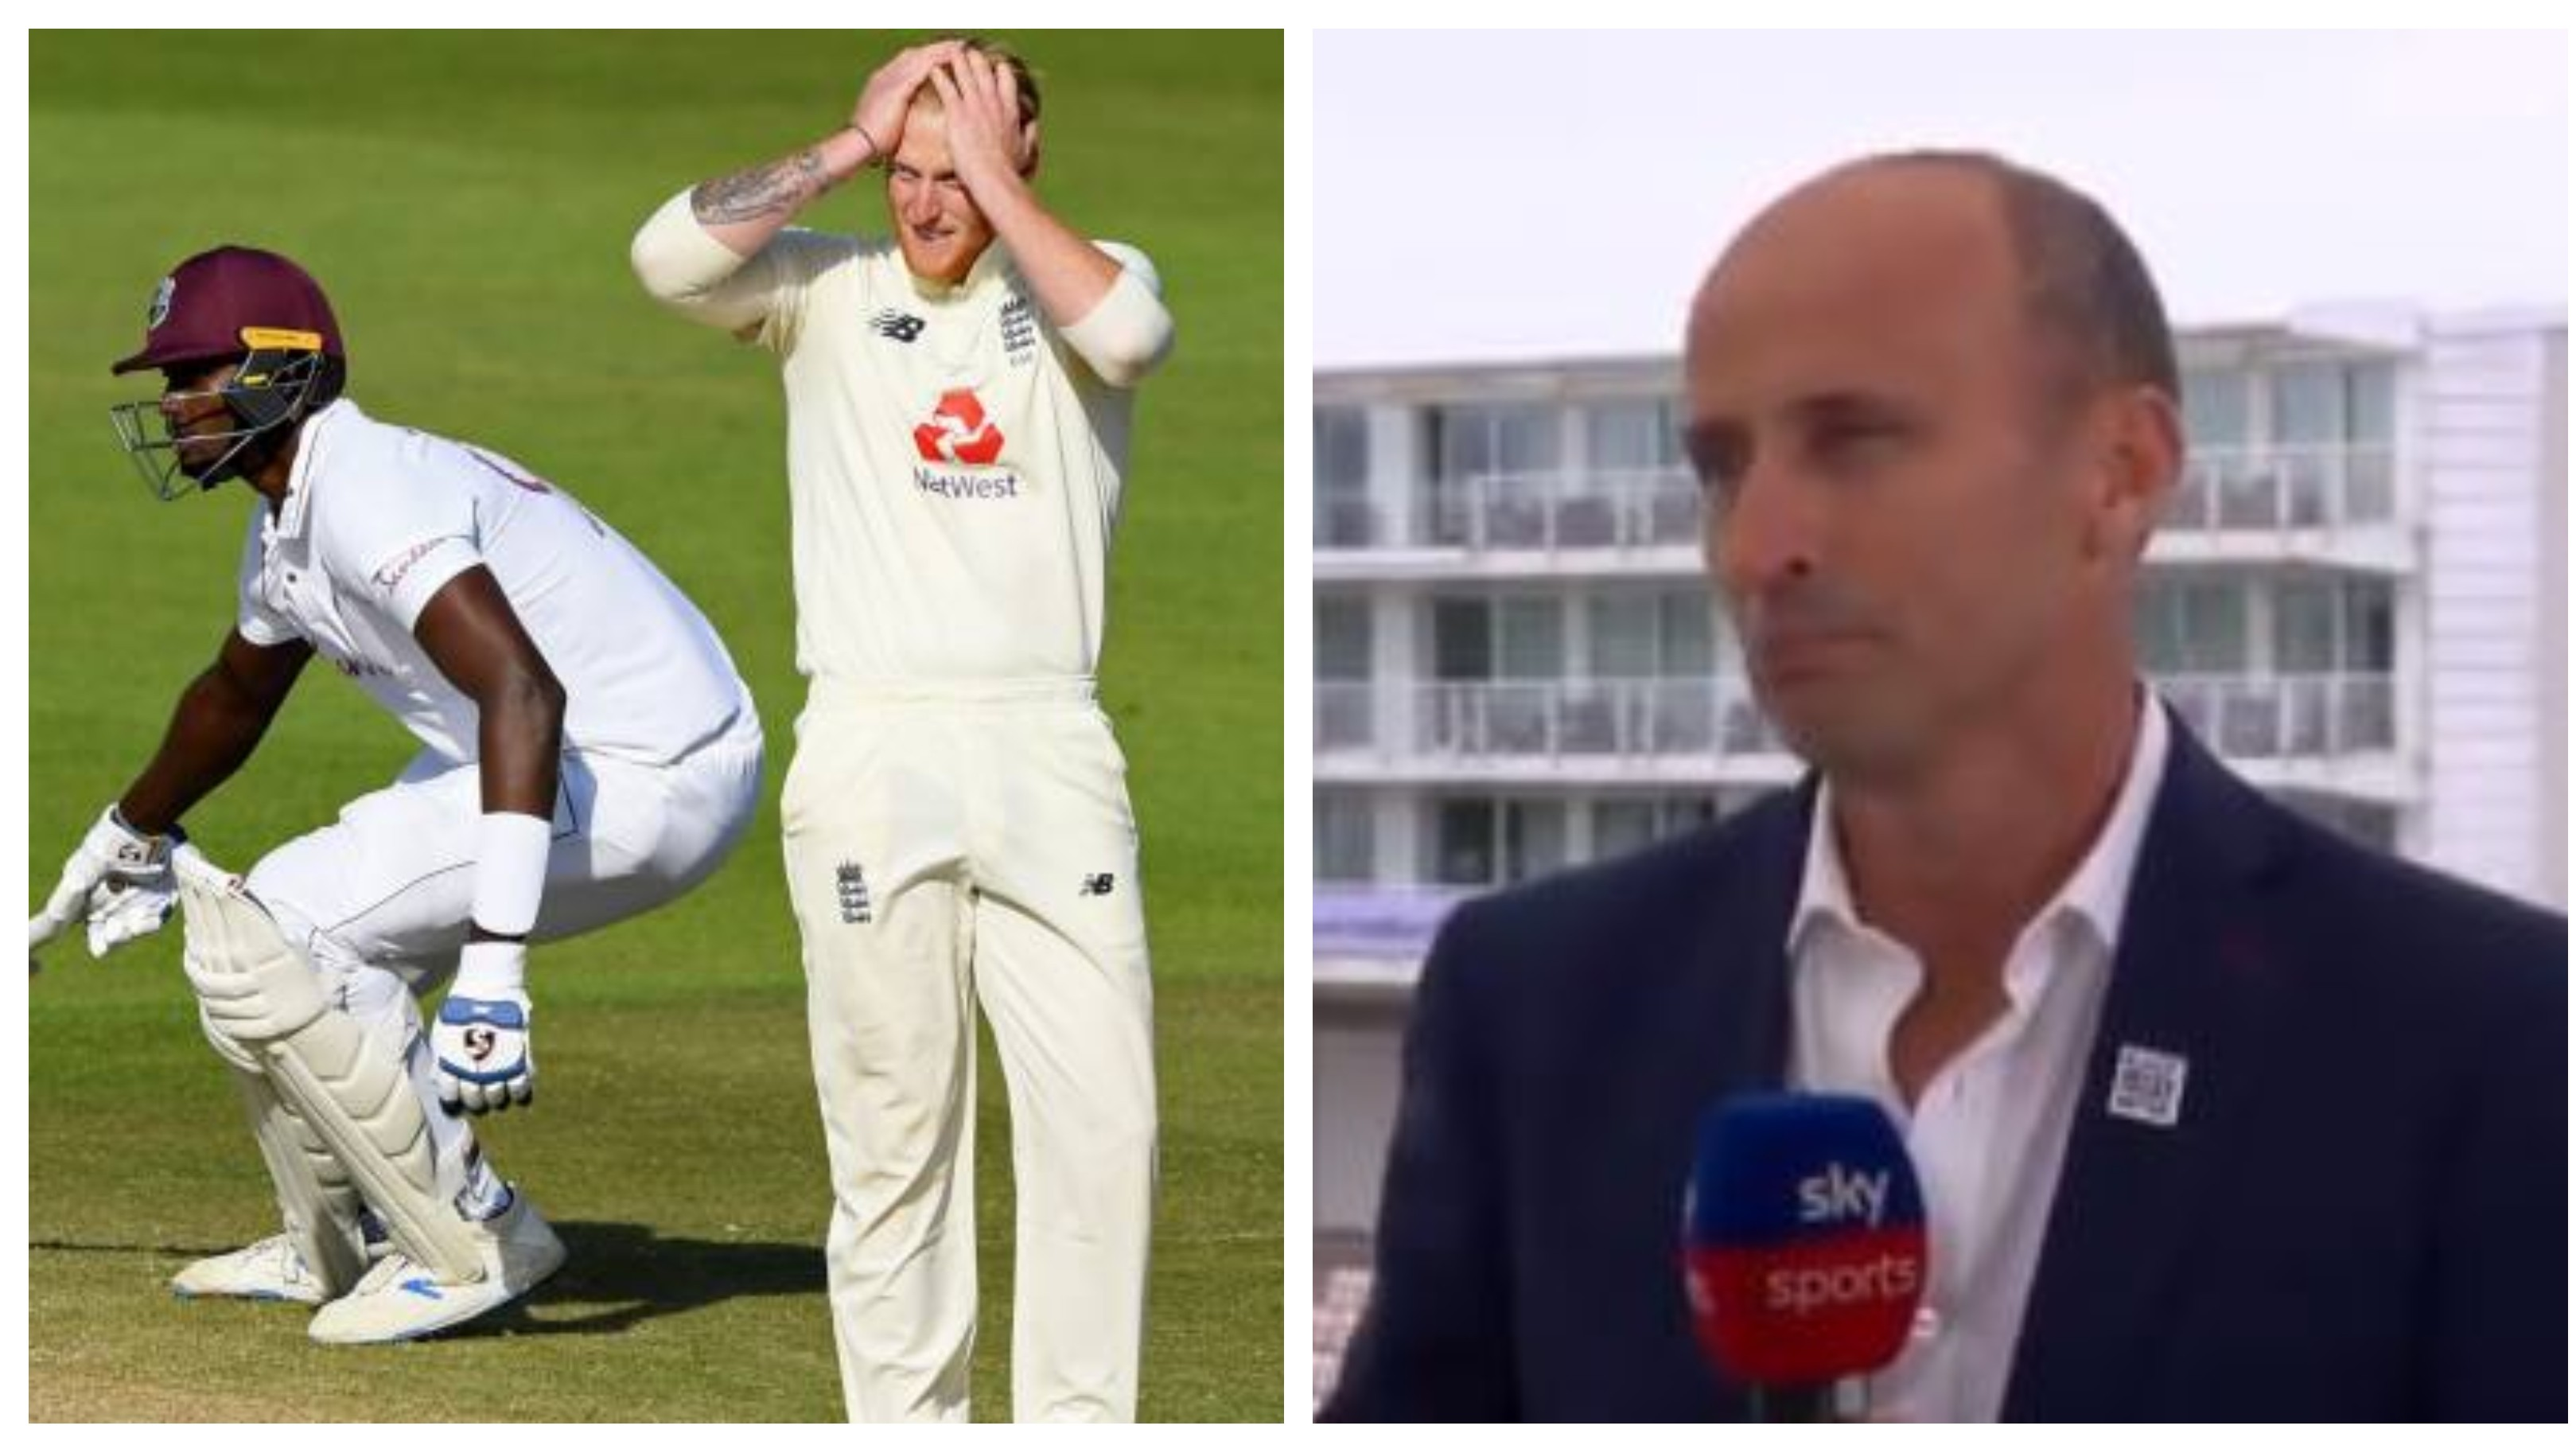 ENG v WI 2020: Batting let England down in first Test, not Stokes' decision-making, says Nasser Hussain